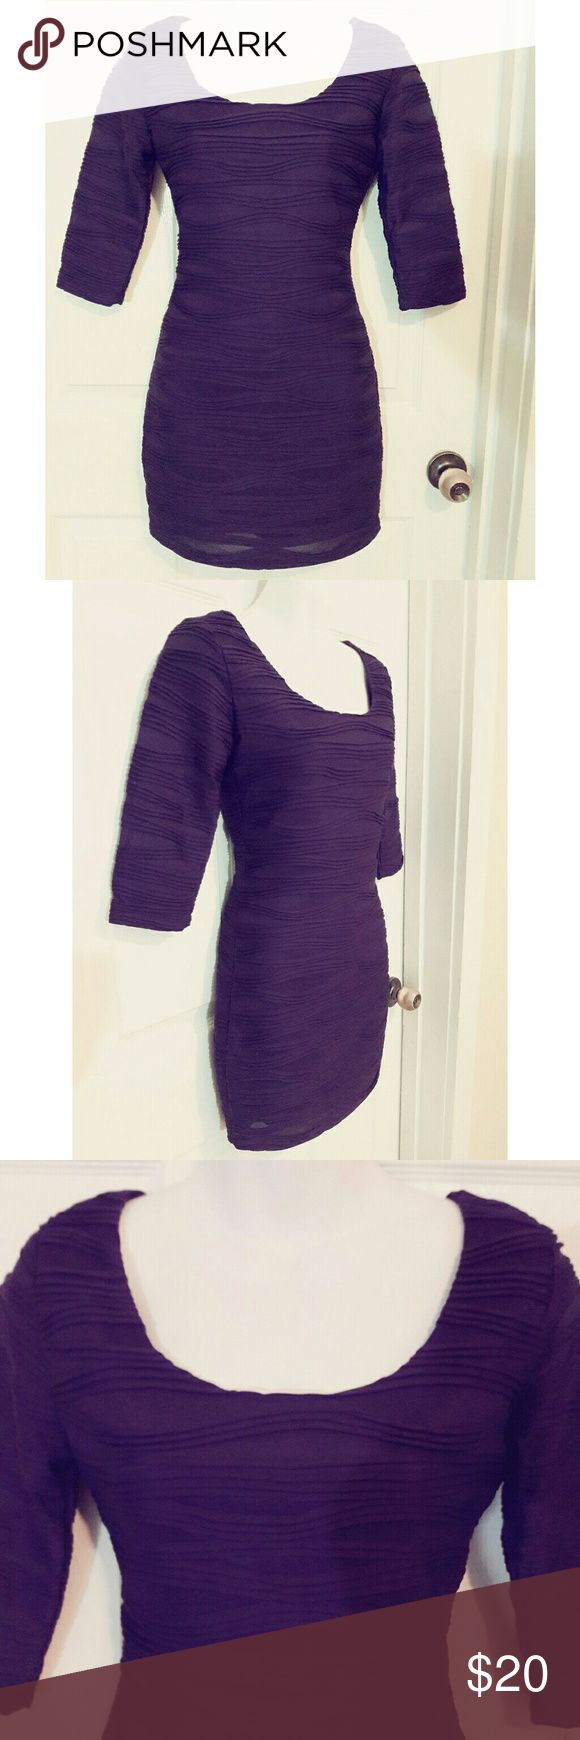 xxi Purple Bodycon dress xxi Purple Bodycon dress. Like new. Worn once. Size S. Smoke free home! Forever 21 Dresses Mini